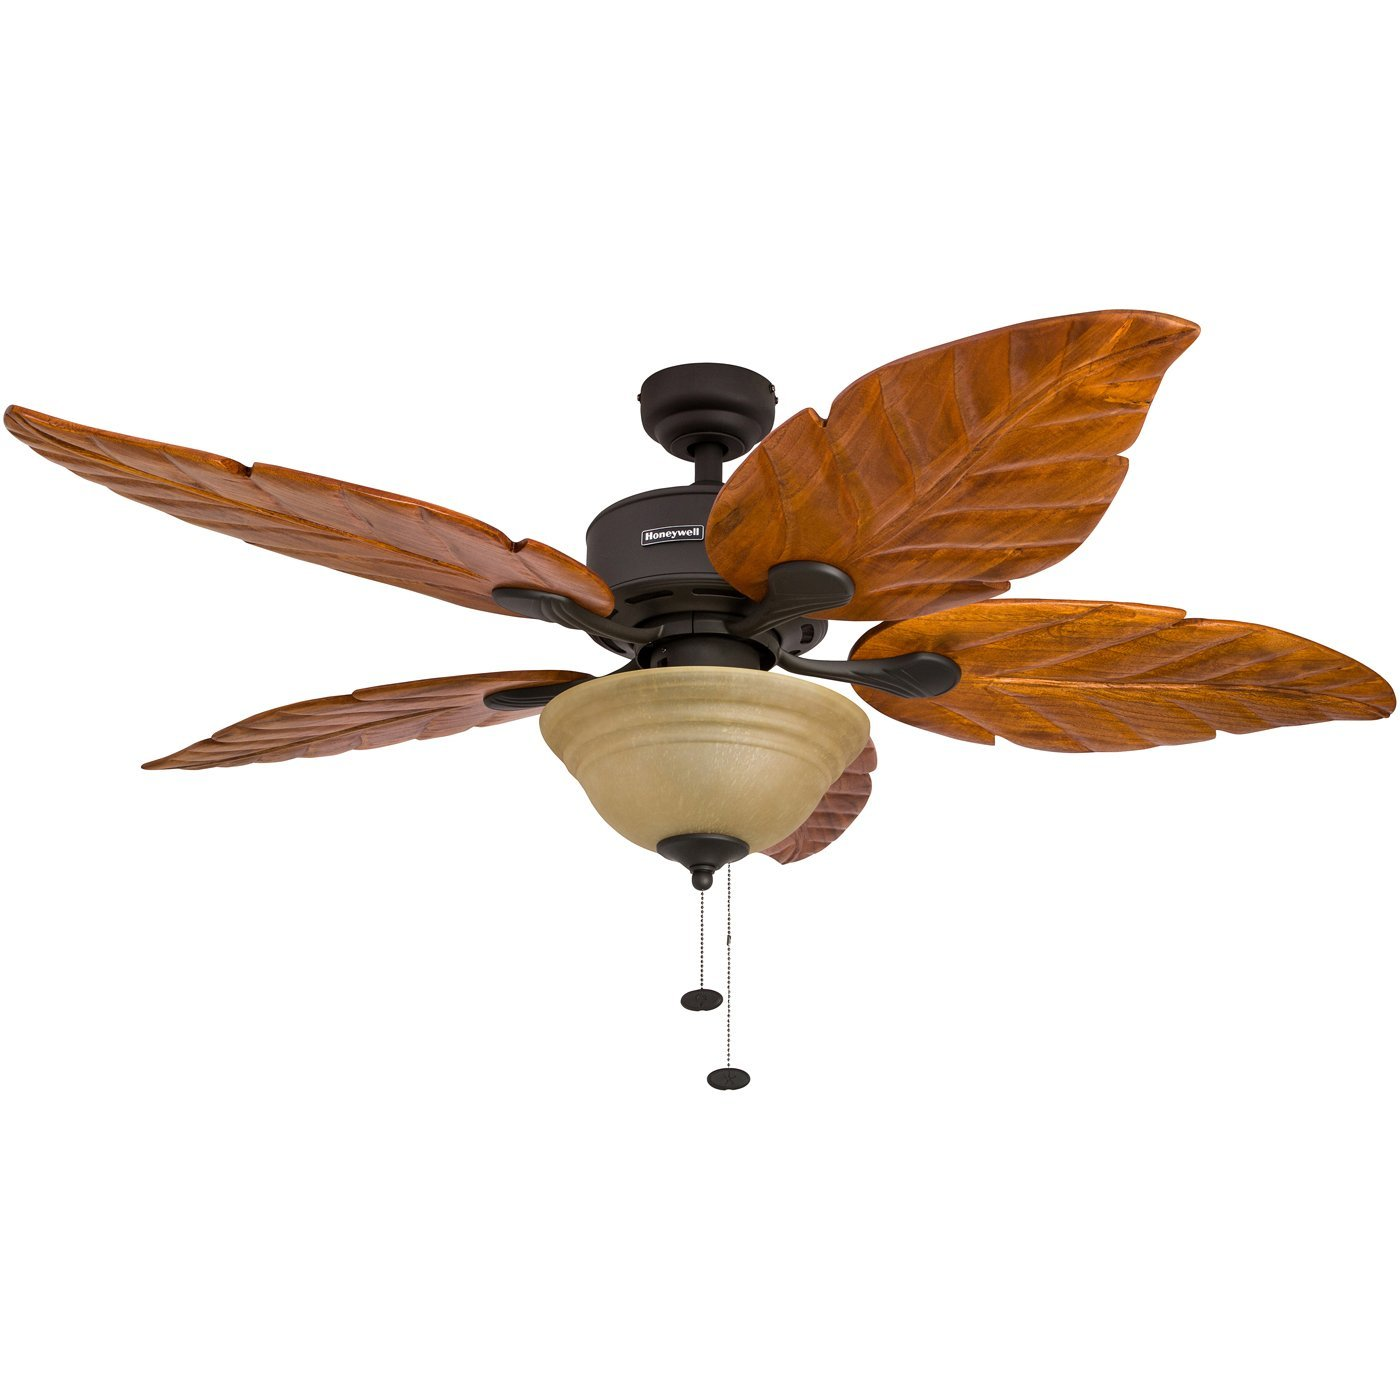 Leaf Ceiling Fan Blades Tropical Ceiling Fans For Soft And Natural Appearance